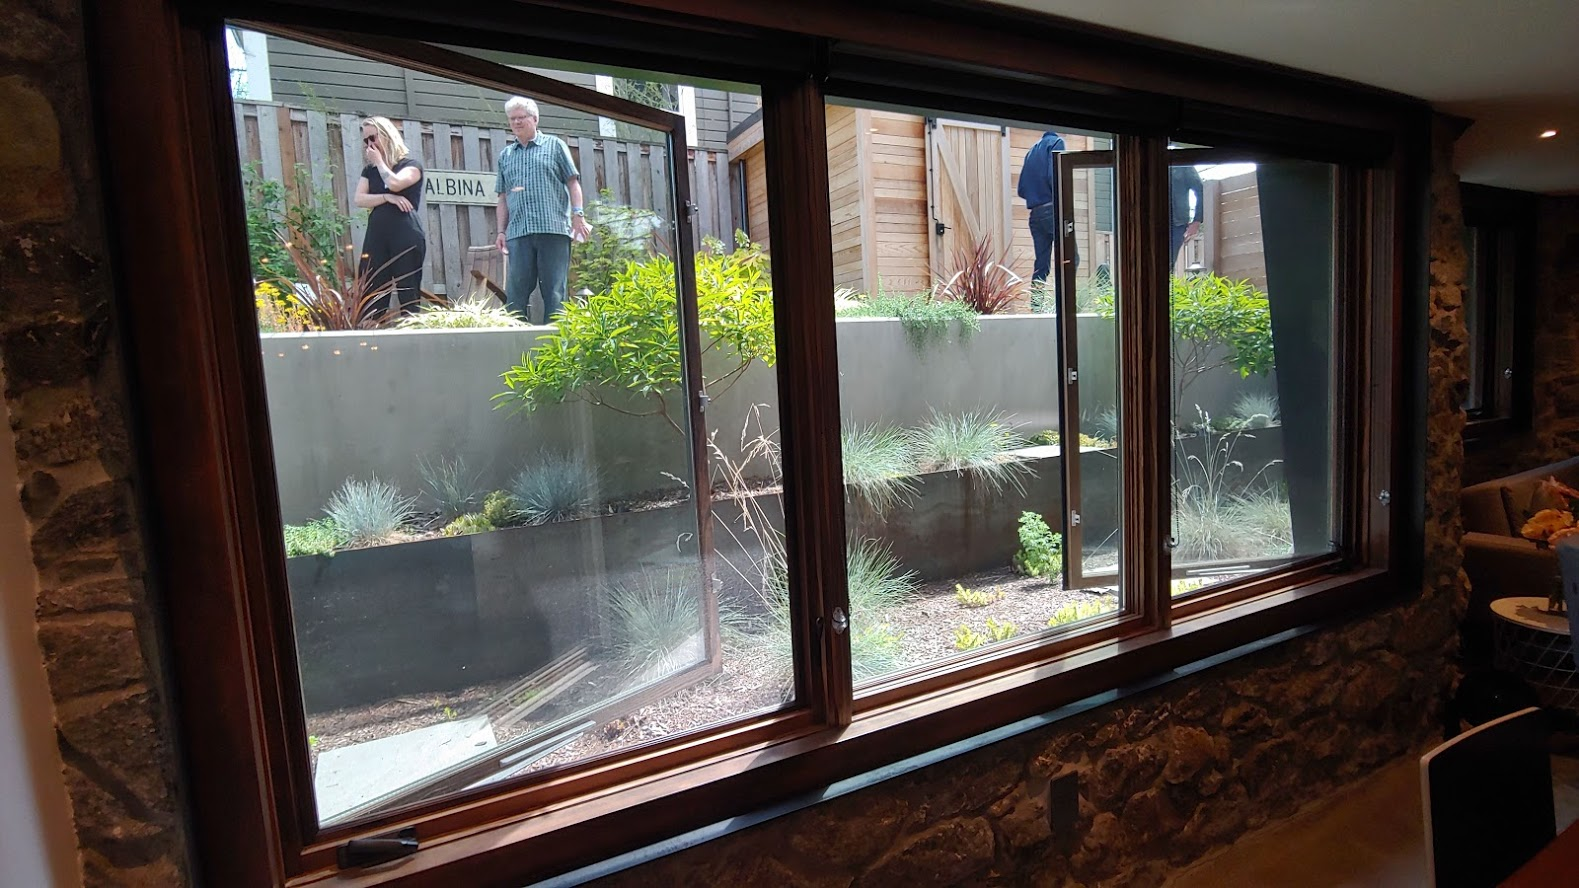 This basement window is approx. 8 feet wide x 4 feet high. With some expensive landscaping work outside. Not only does this meet escape and lighting needs, it also creates a space that feels nothing like a basement suite.